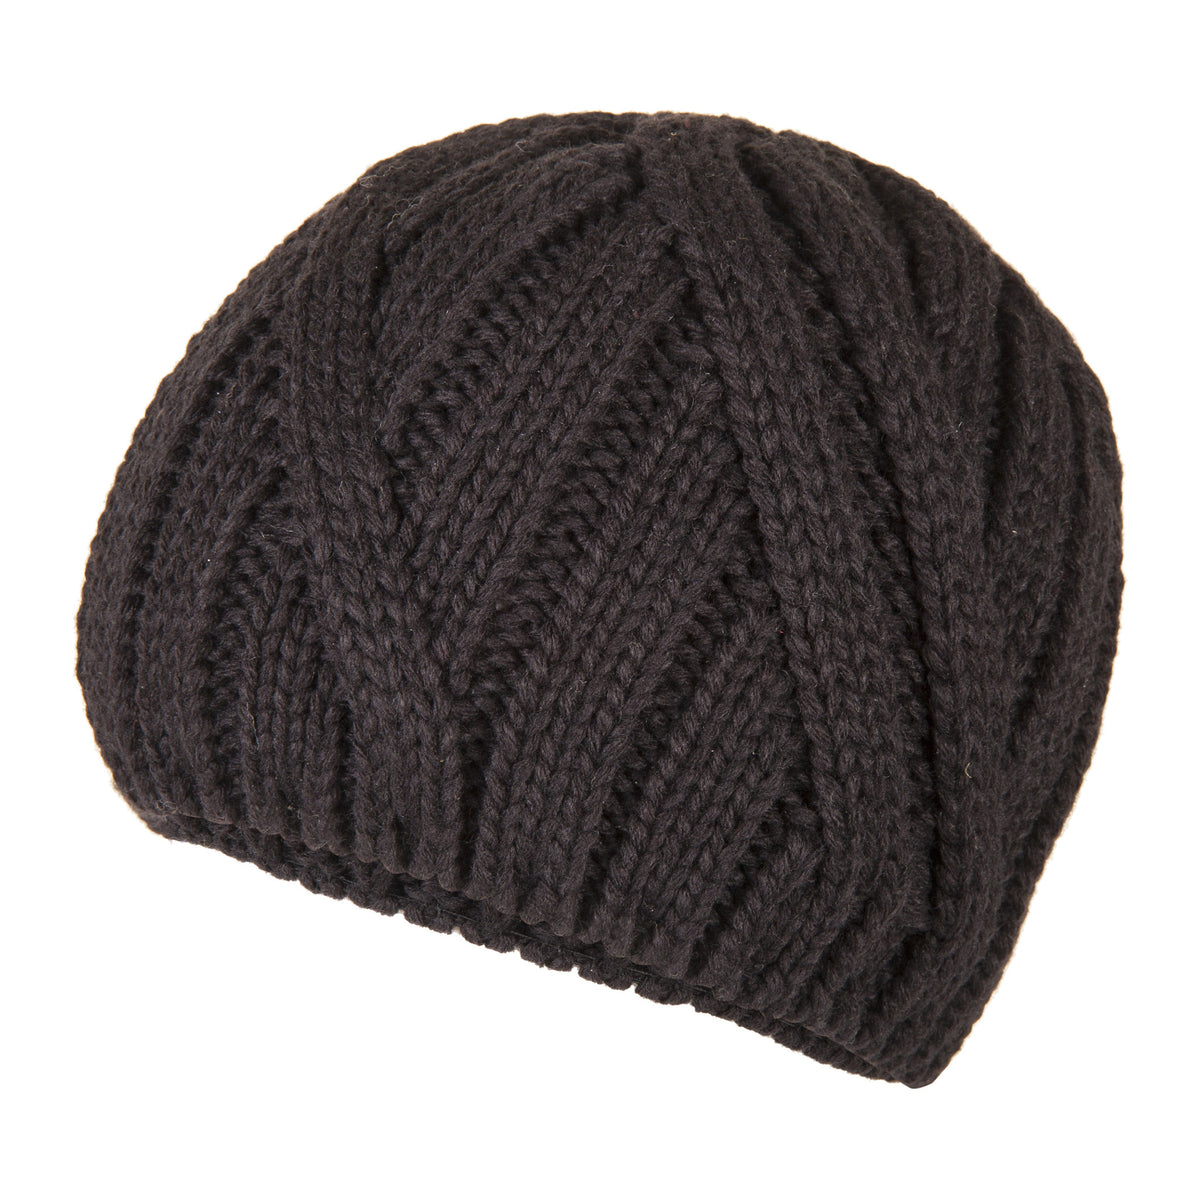 Black Wool Warm Cable Knit Beanie | buy now at The Cashmere Choice London